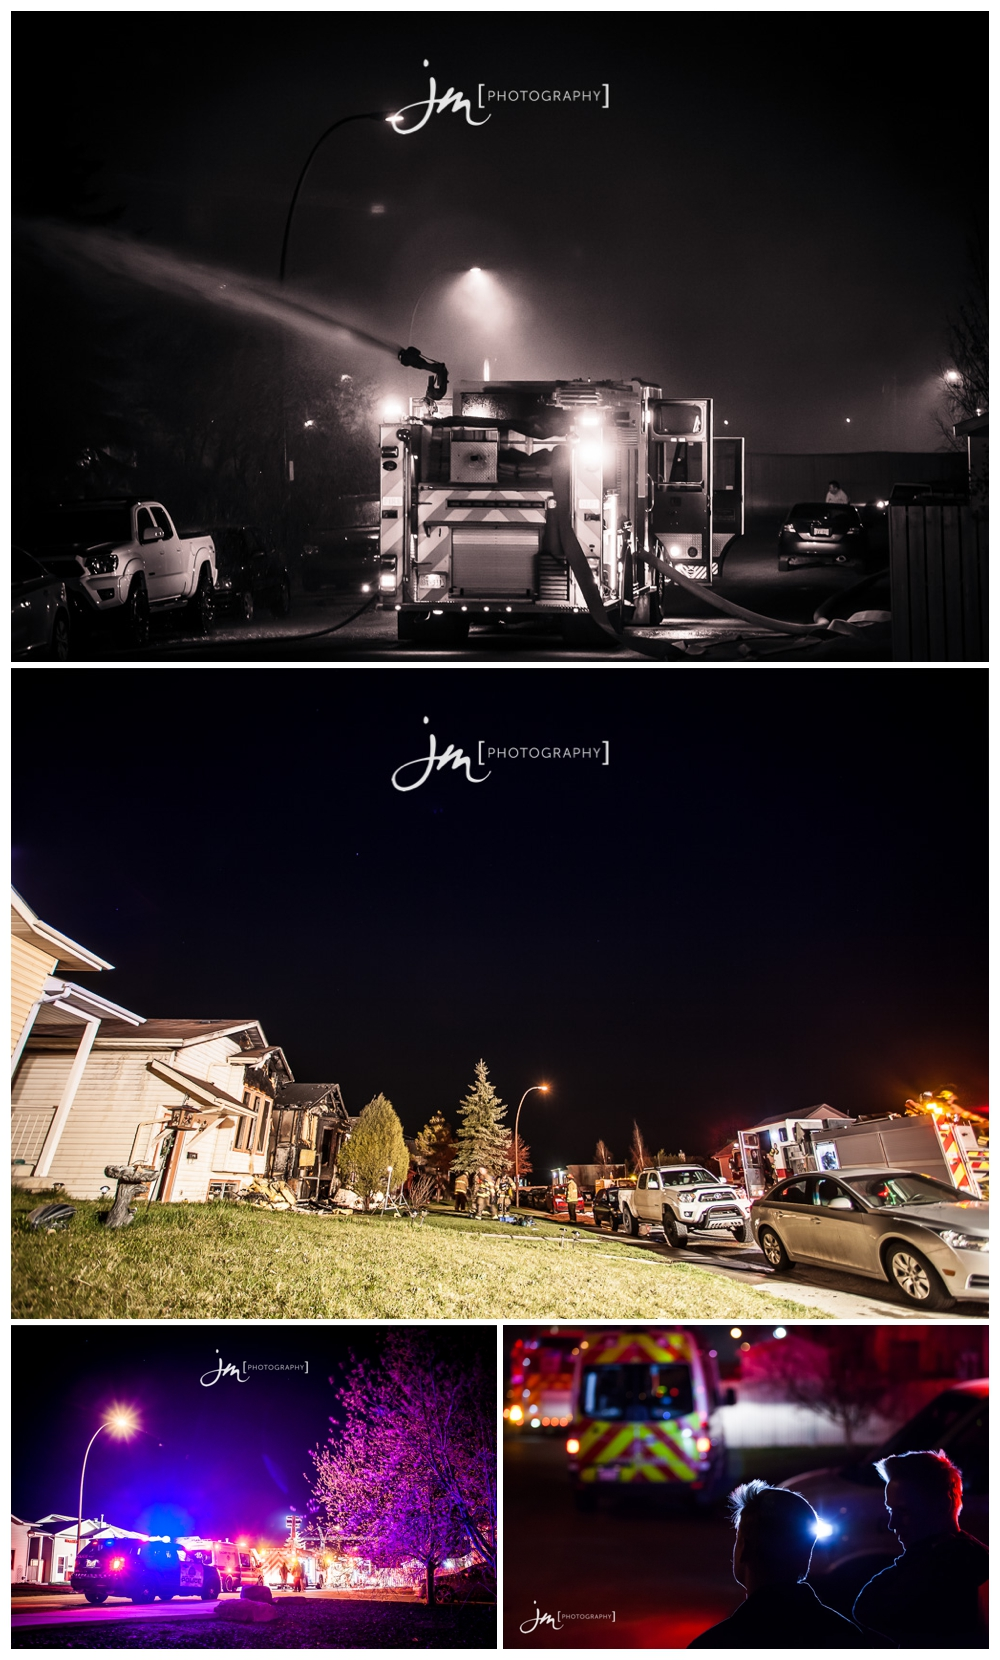 150422_003-Calgary-Family-Photographers-JM_Photography-Jeremy-Martel-Erin-Woods-Fire